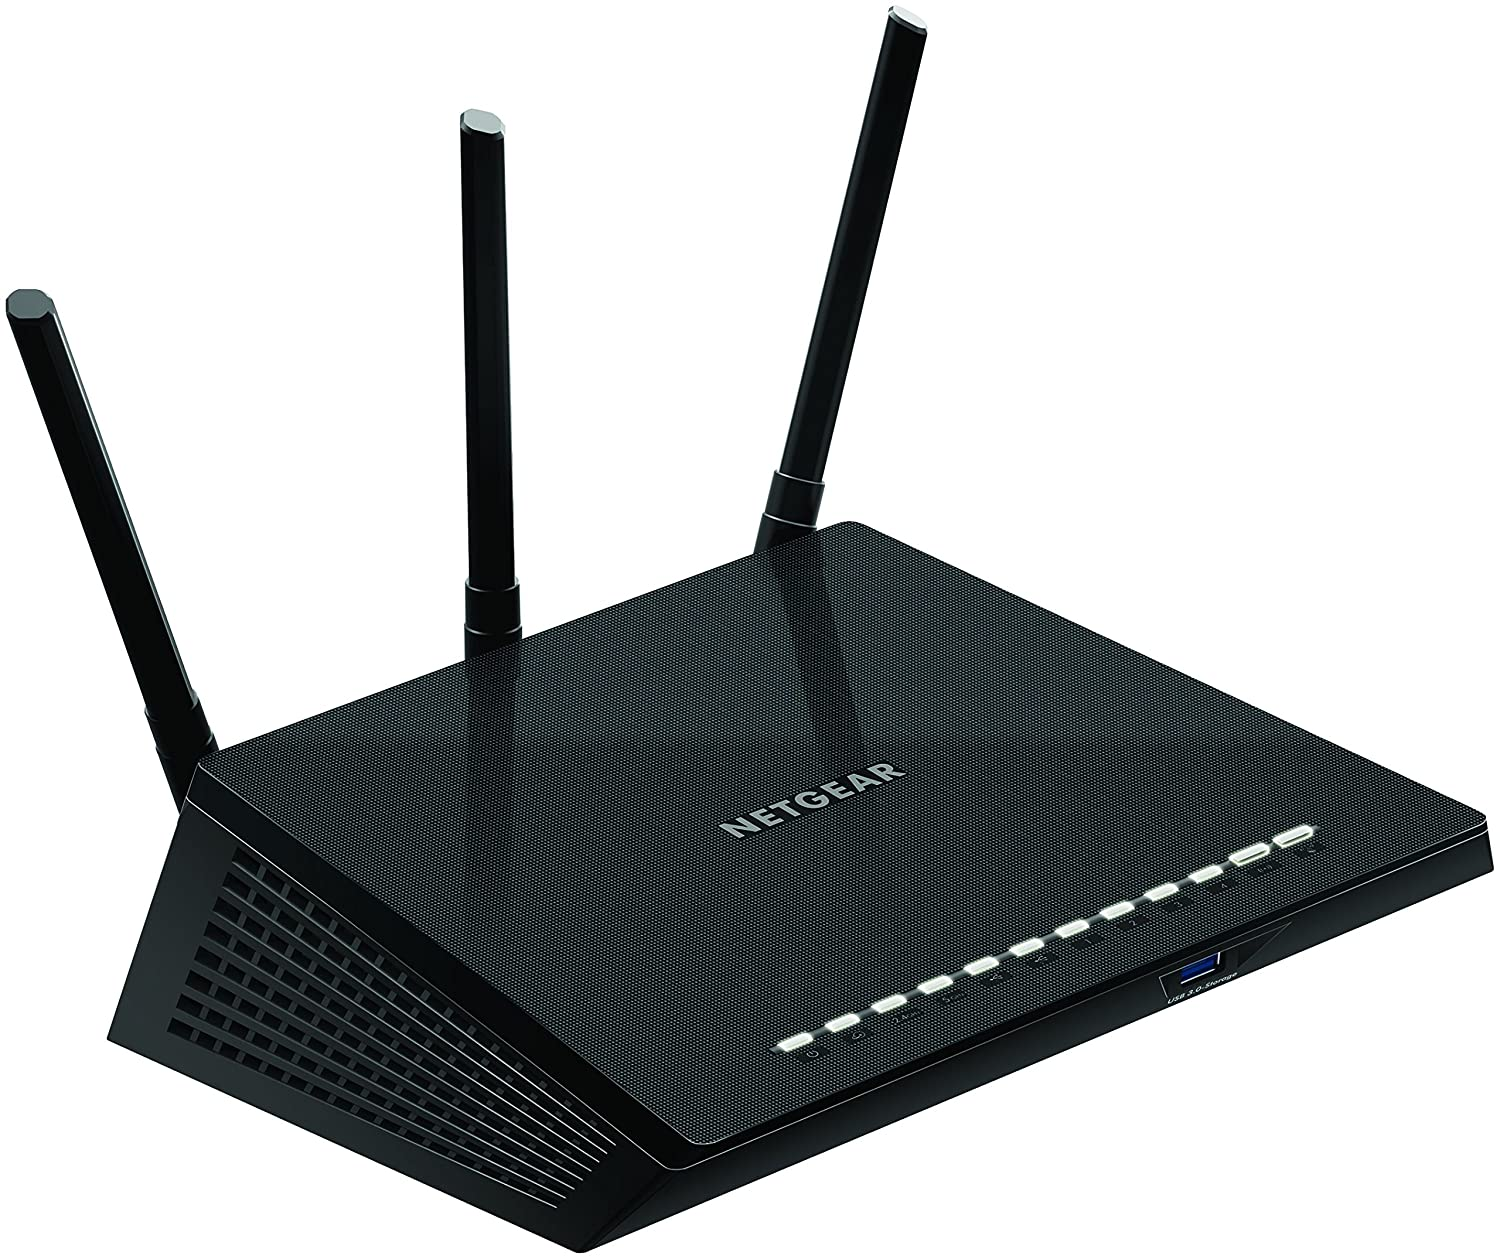 NETGEAR Nighthawk R6700 Smart Dual Band AC1750